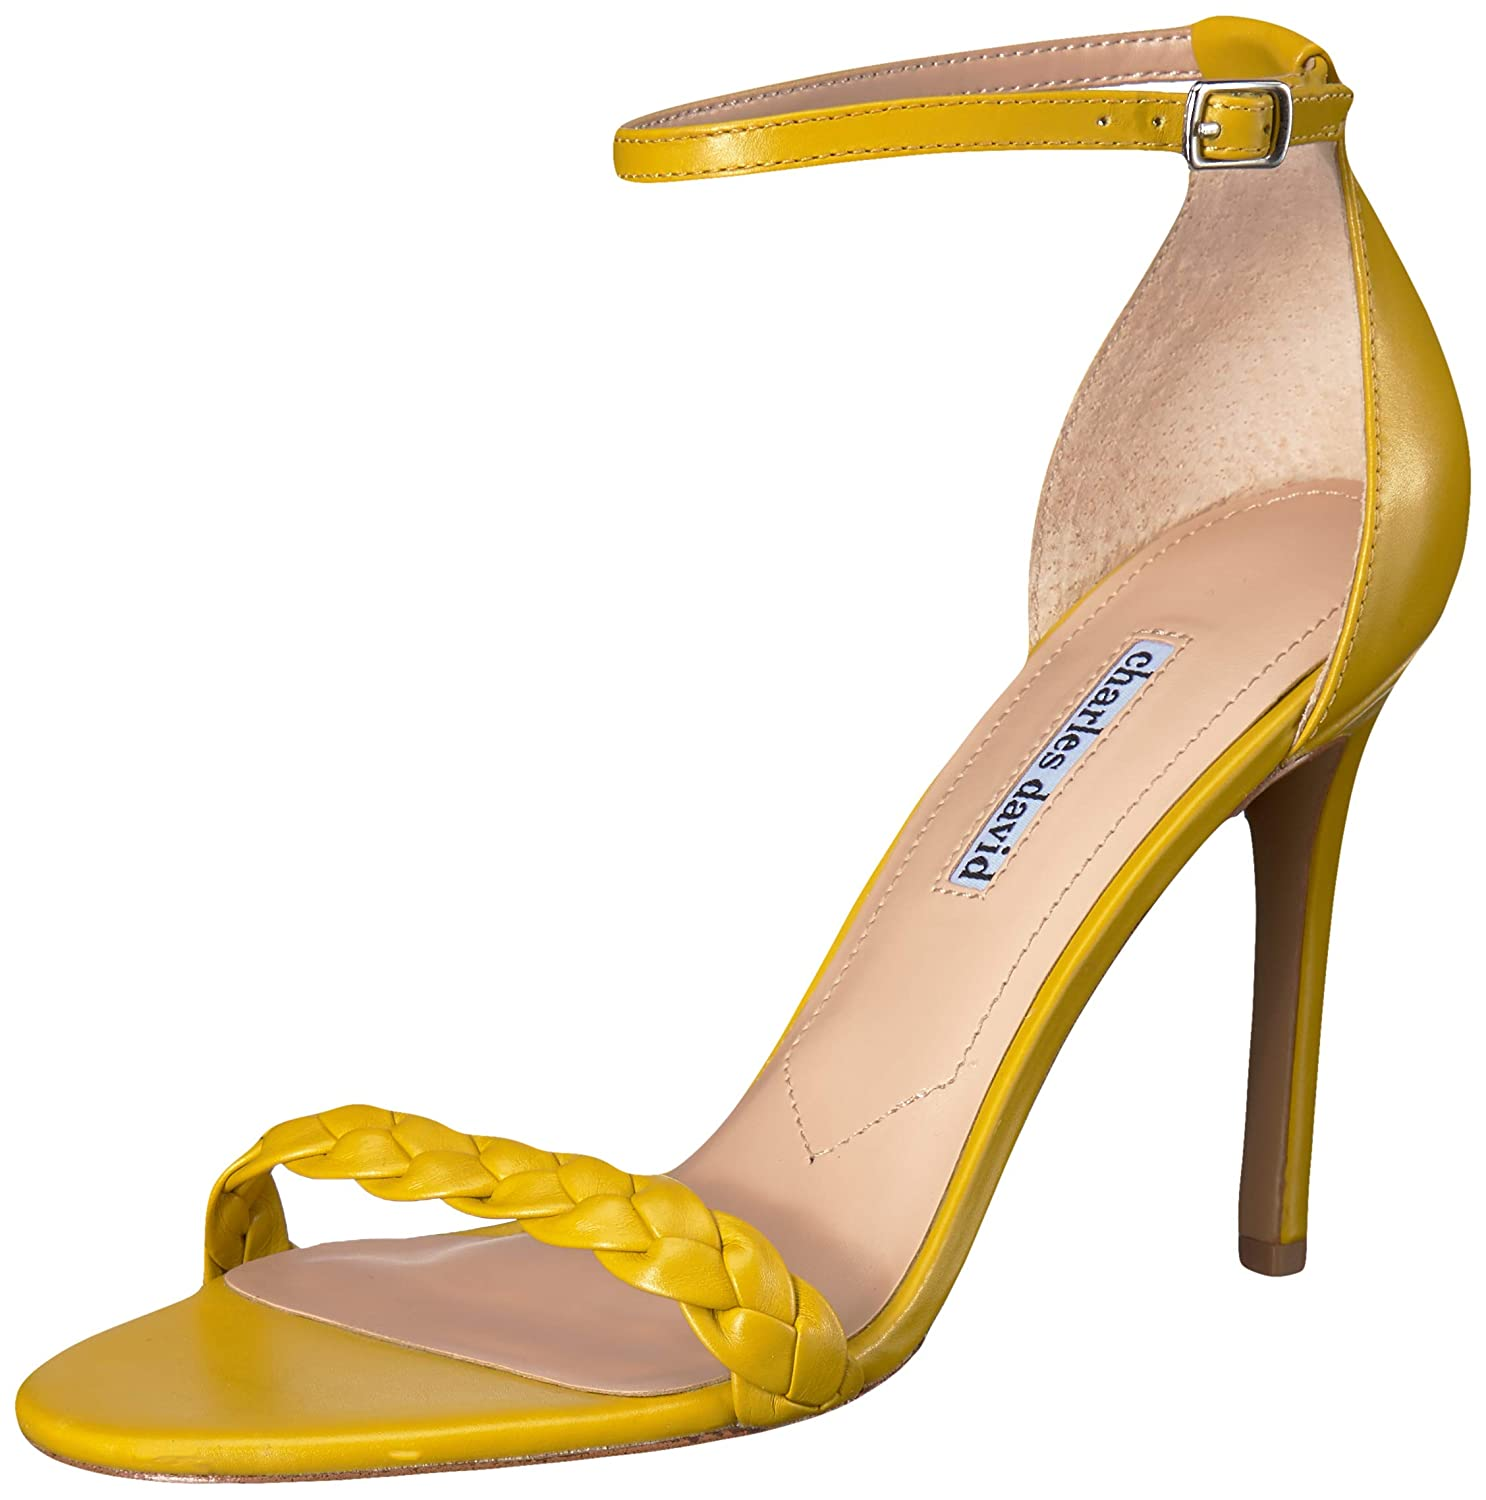 Sunshine Charles David Womens Camomile Pump